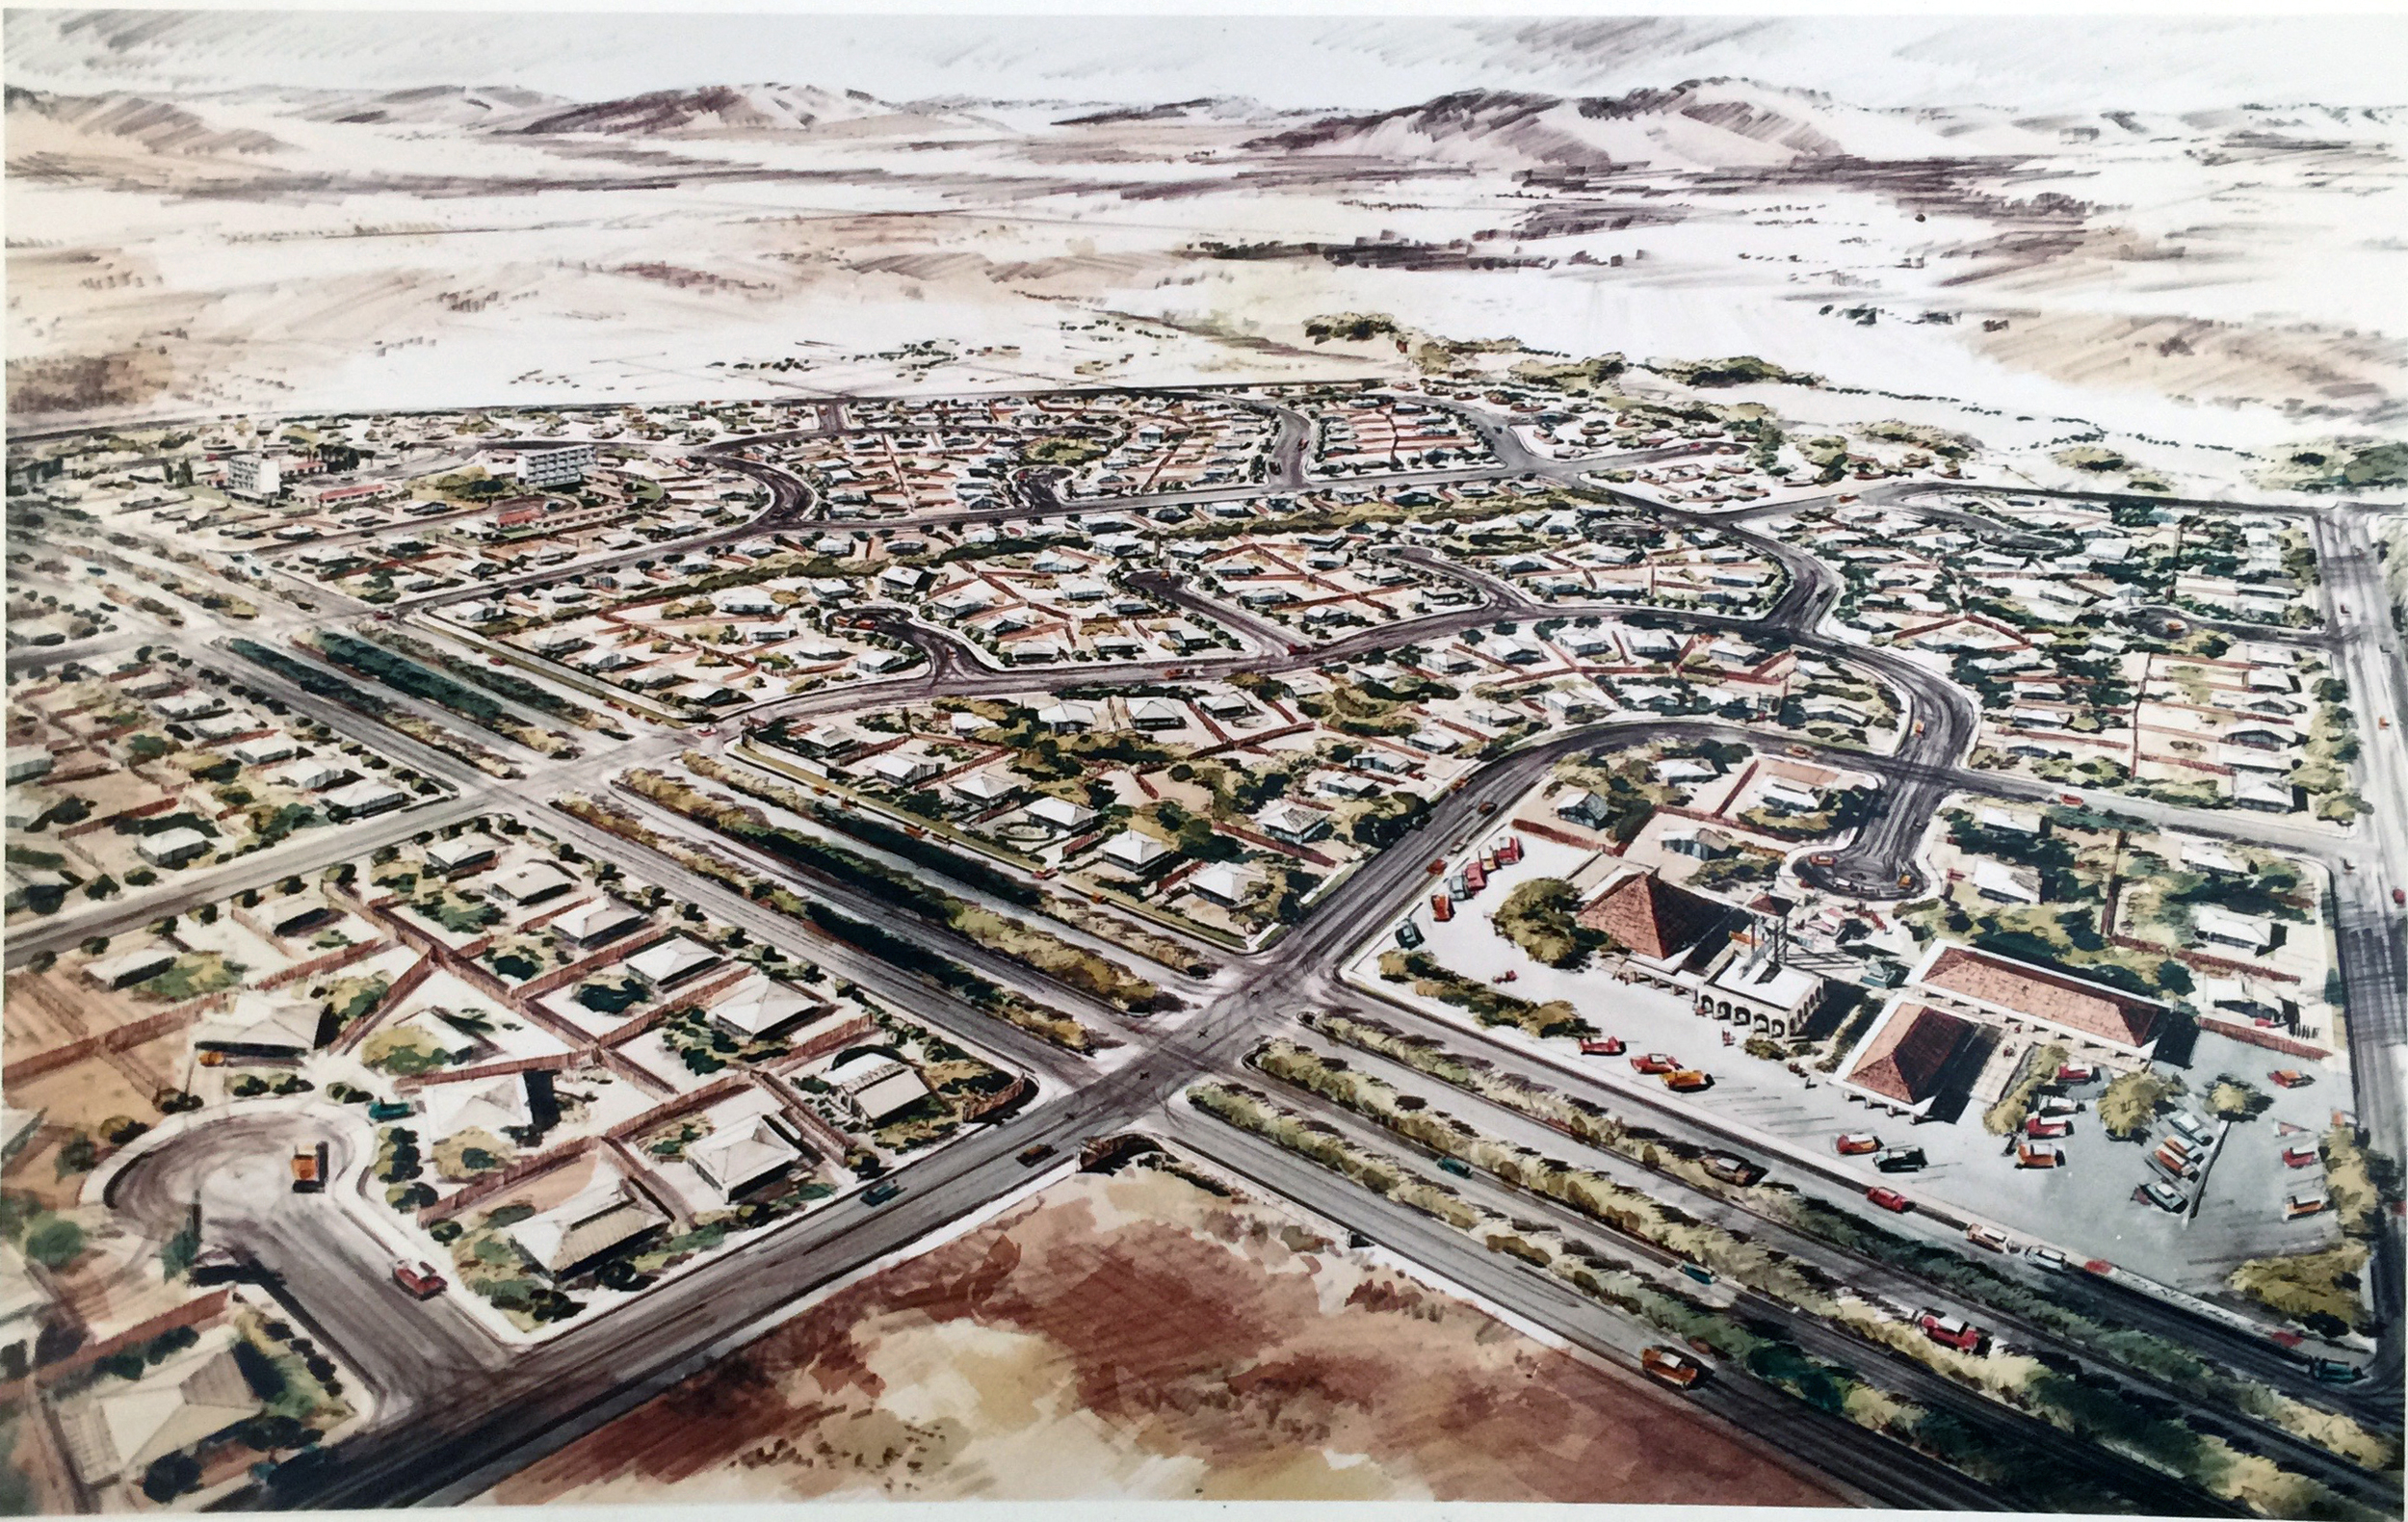 Smith and Williams, Architects and Engineers. Subdivision with Shopping Center, California City Master Plan. 196?. Architecture and Design Collection, University Art Museum, UCSB.